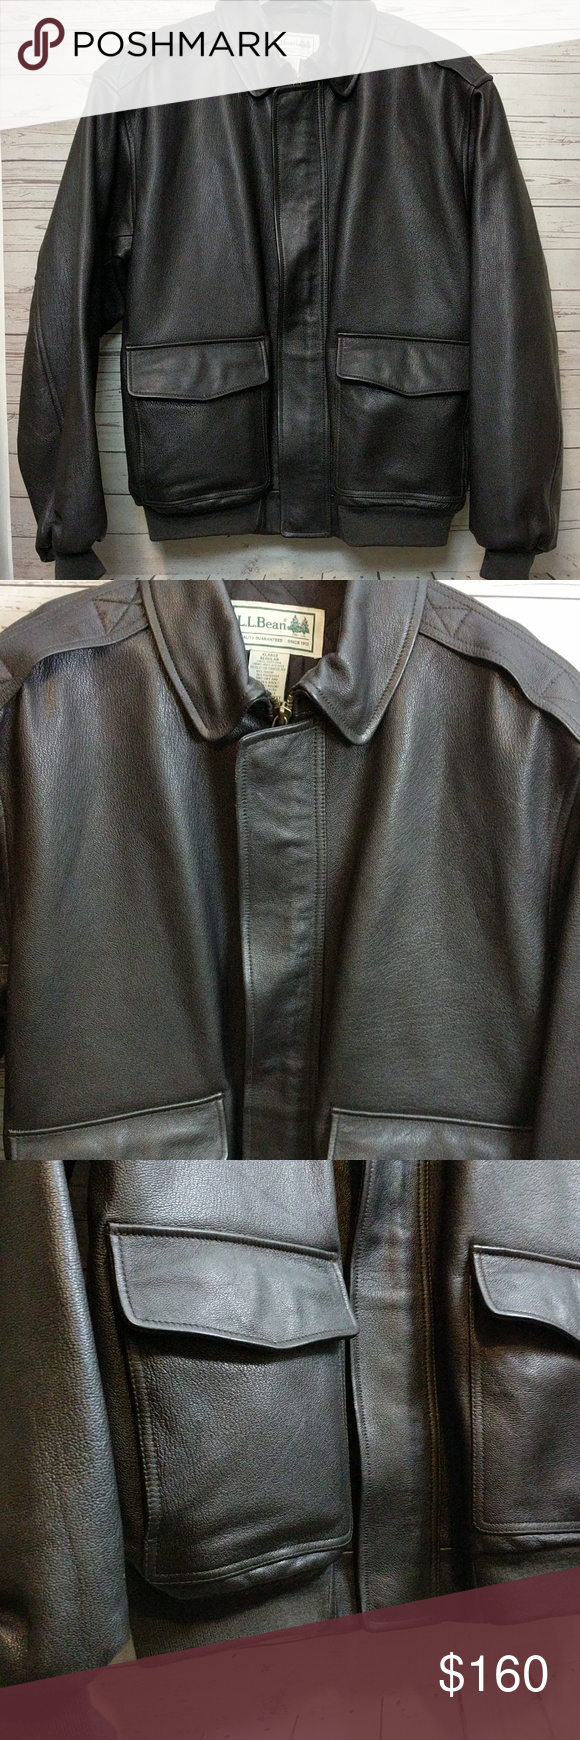 bbe06f3c1 Vintage LL Bean Leather Bomber Jacket Classic Coat This Vintage LL ...